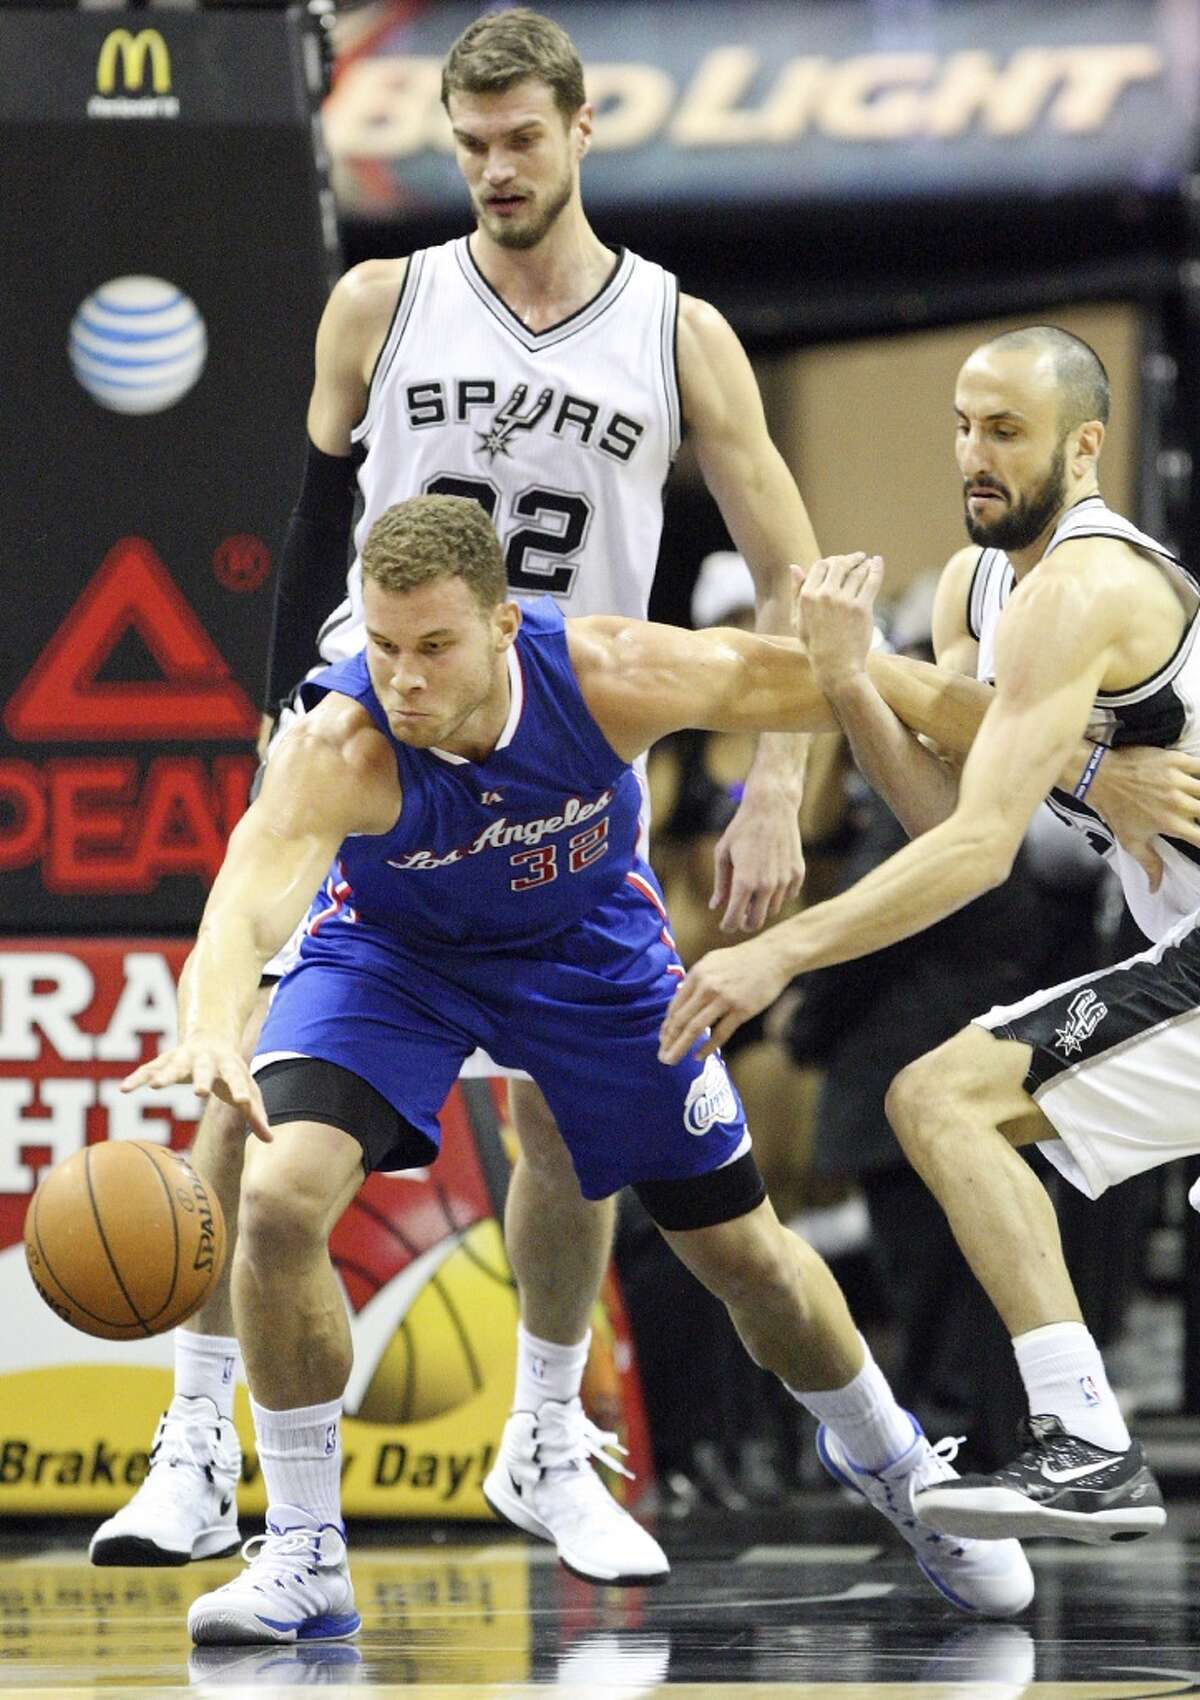 Los Angeles Clippers' Blake Griffin and San Antonio Spurs' Manu Ginobili grab for a loose ball as San Antonio Spurs' Tiago Splitter looks on during first half action Monday Dec. 22, 2014 at the AT&T Center.